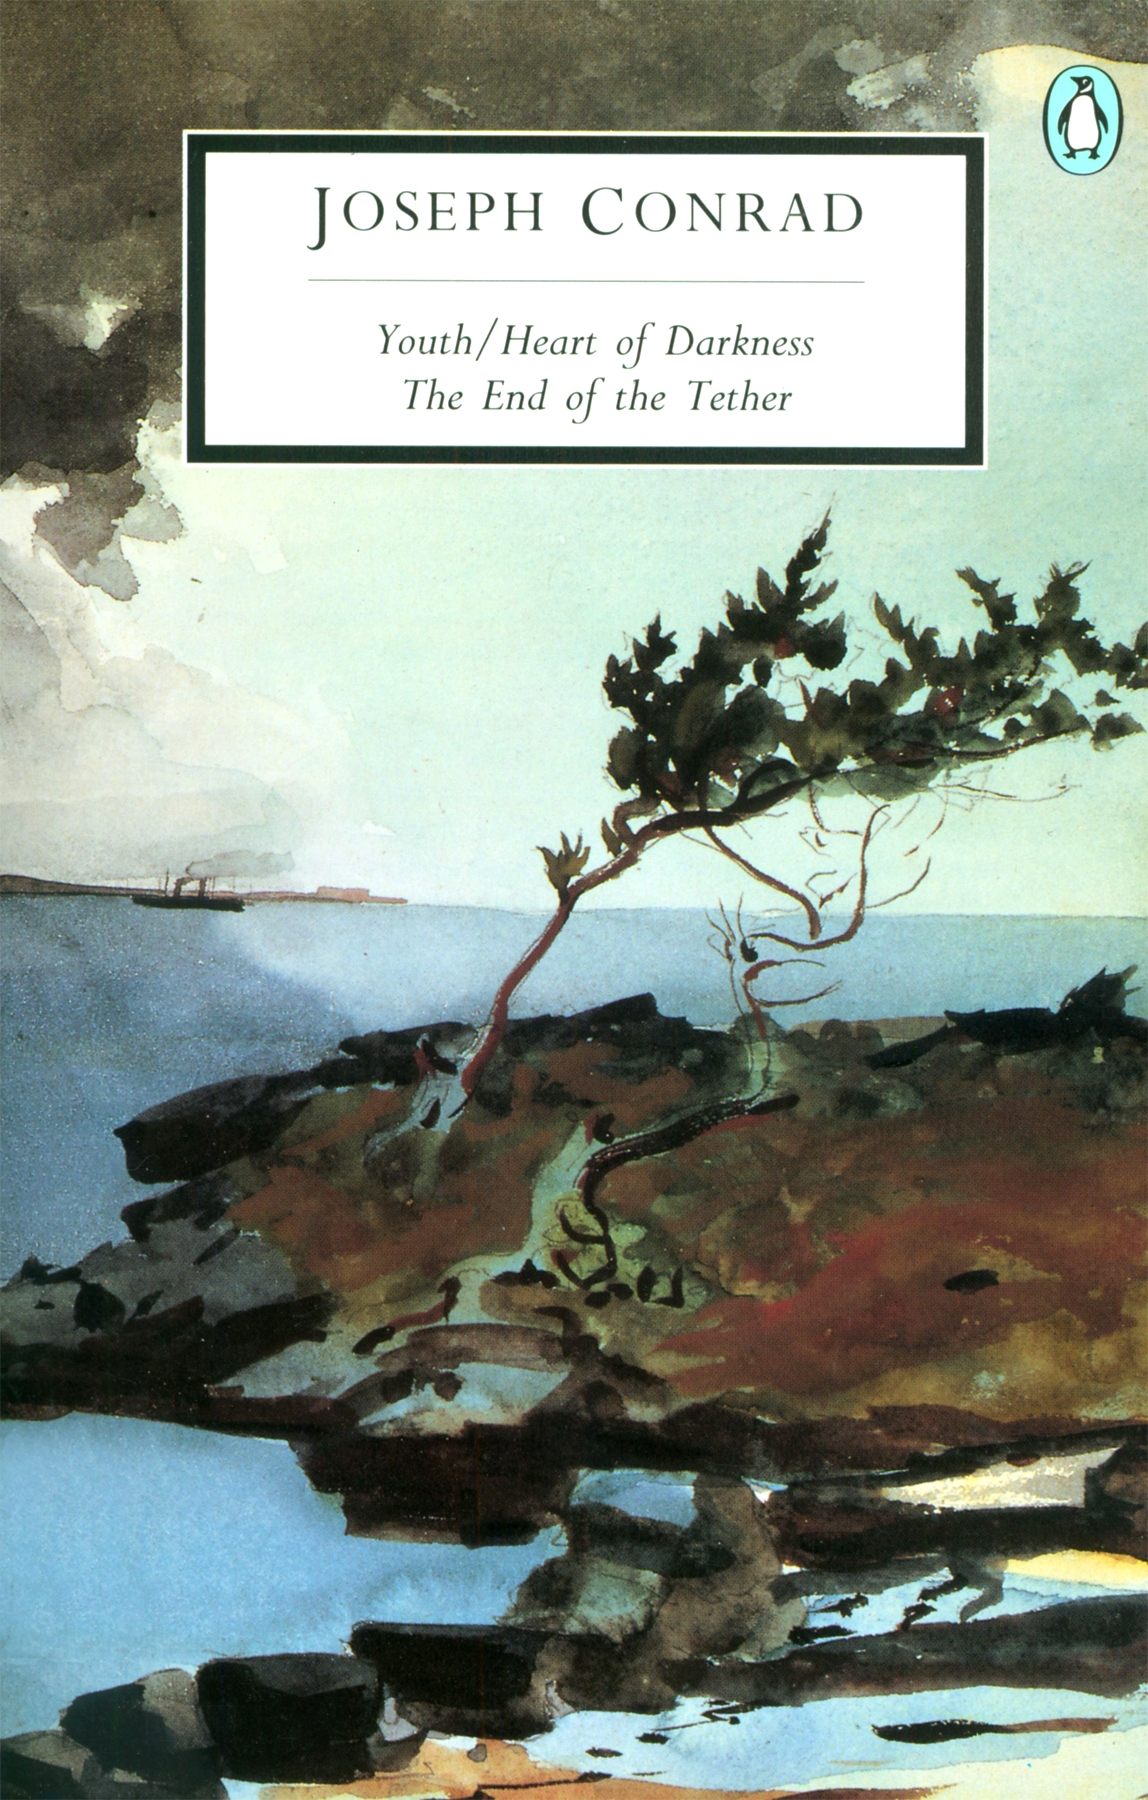 an examination of the representation of the africans by joseph conrad in the book heart of darkness